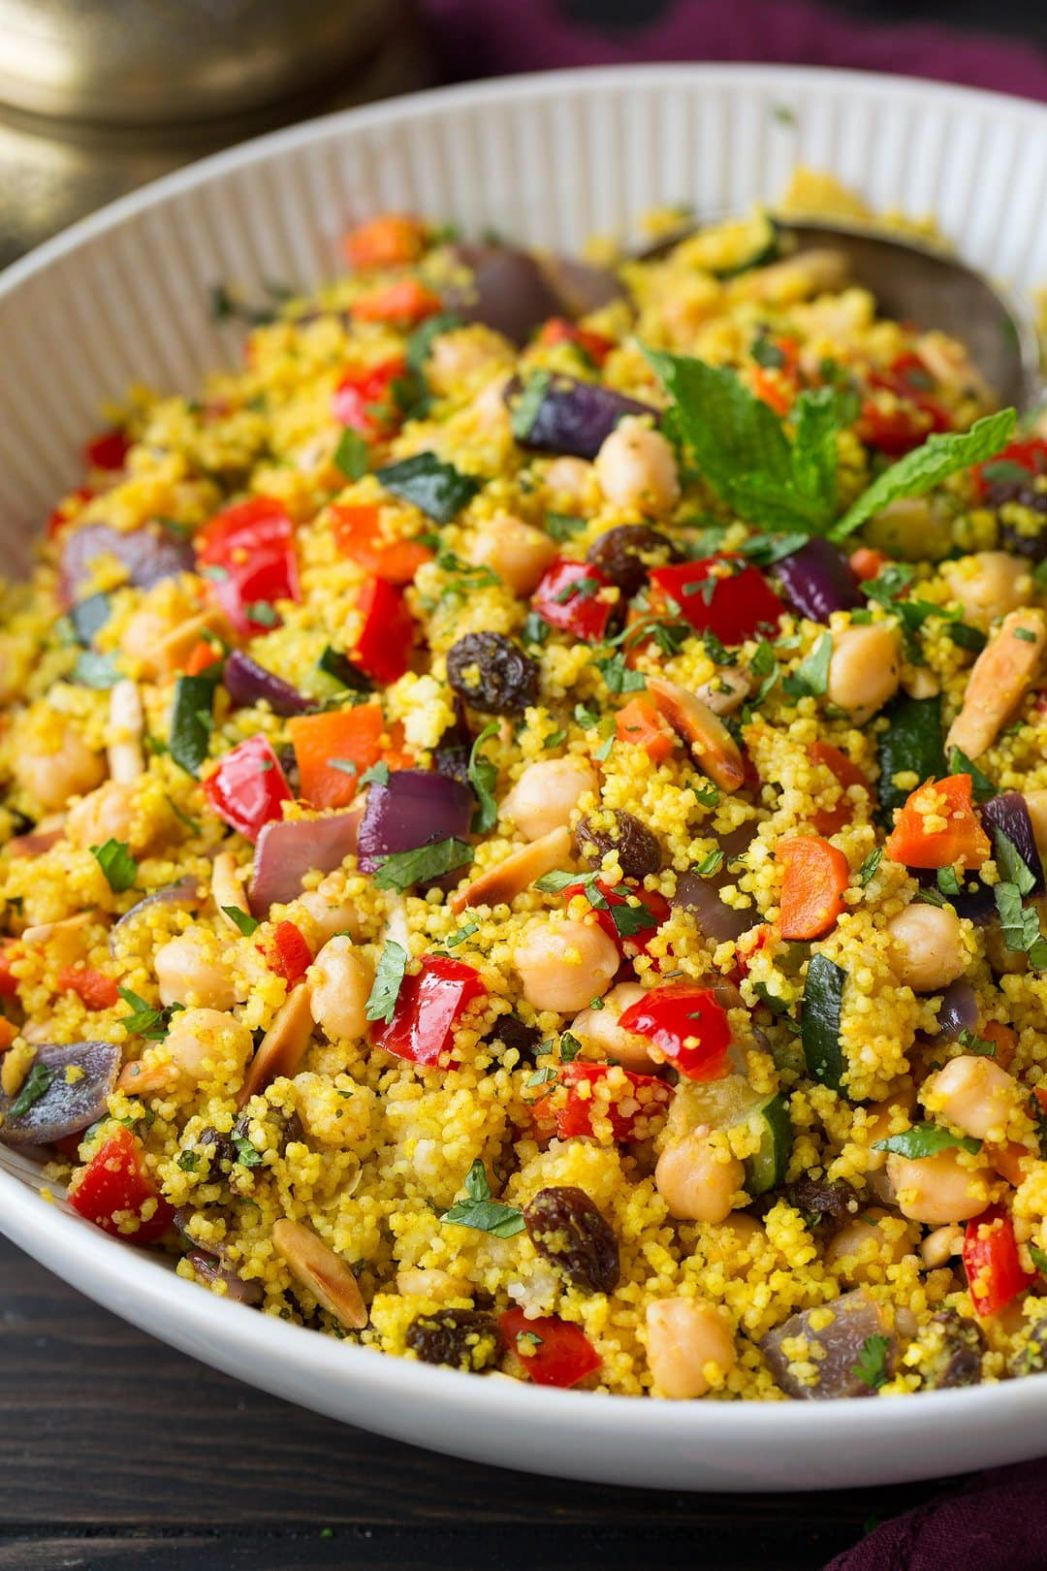 Moroccan Couscous with Roasted Vegetables, Chick Peas and Almonds - Recipes Couscous Salad